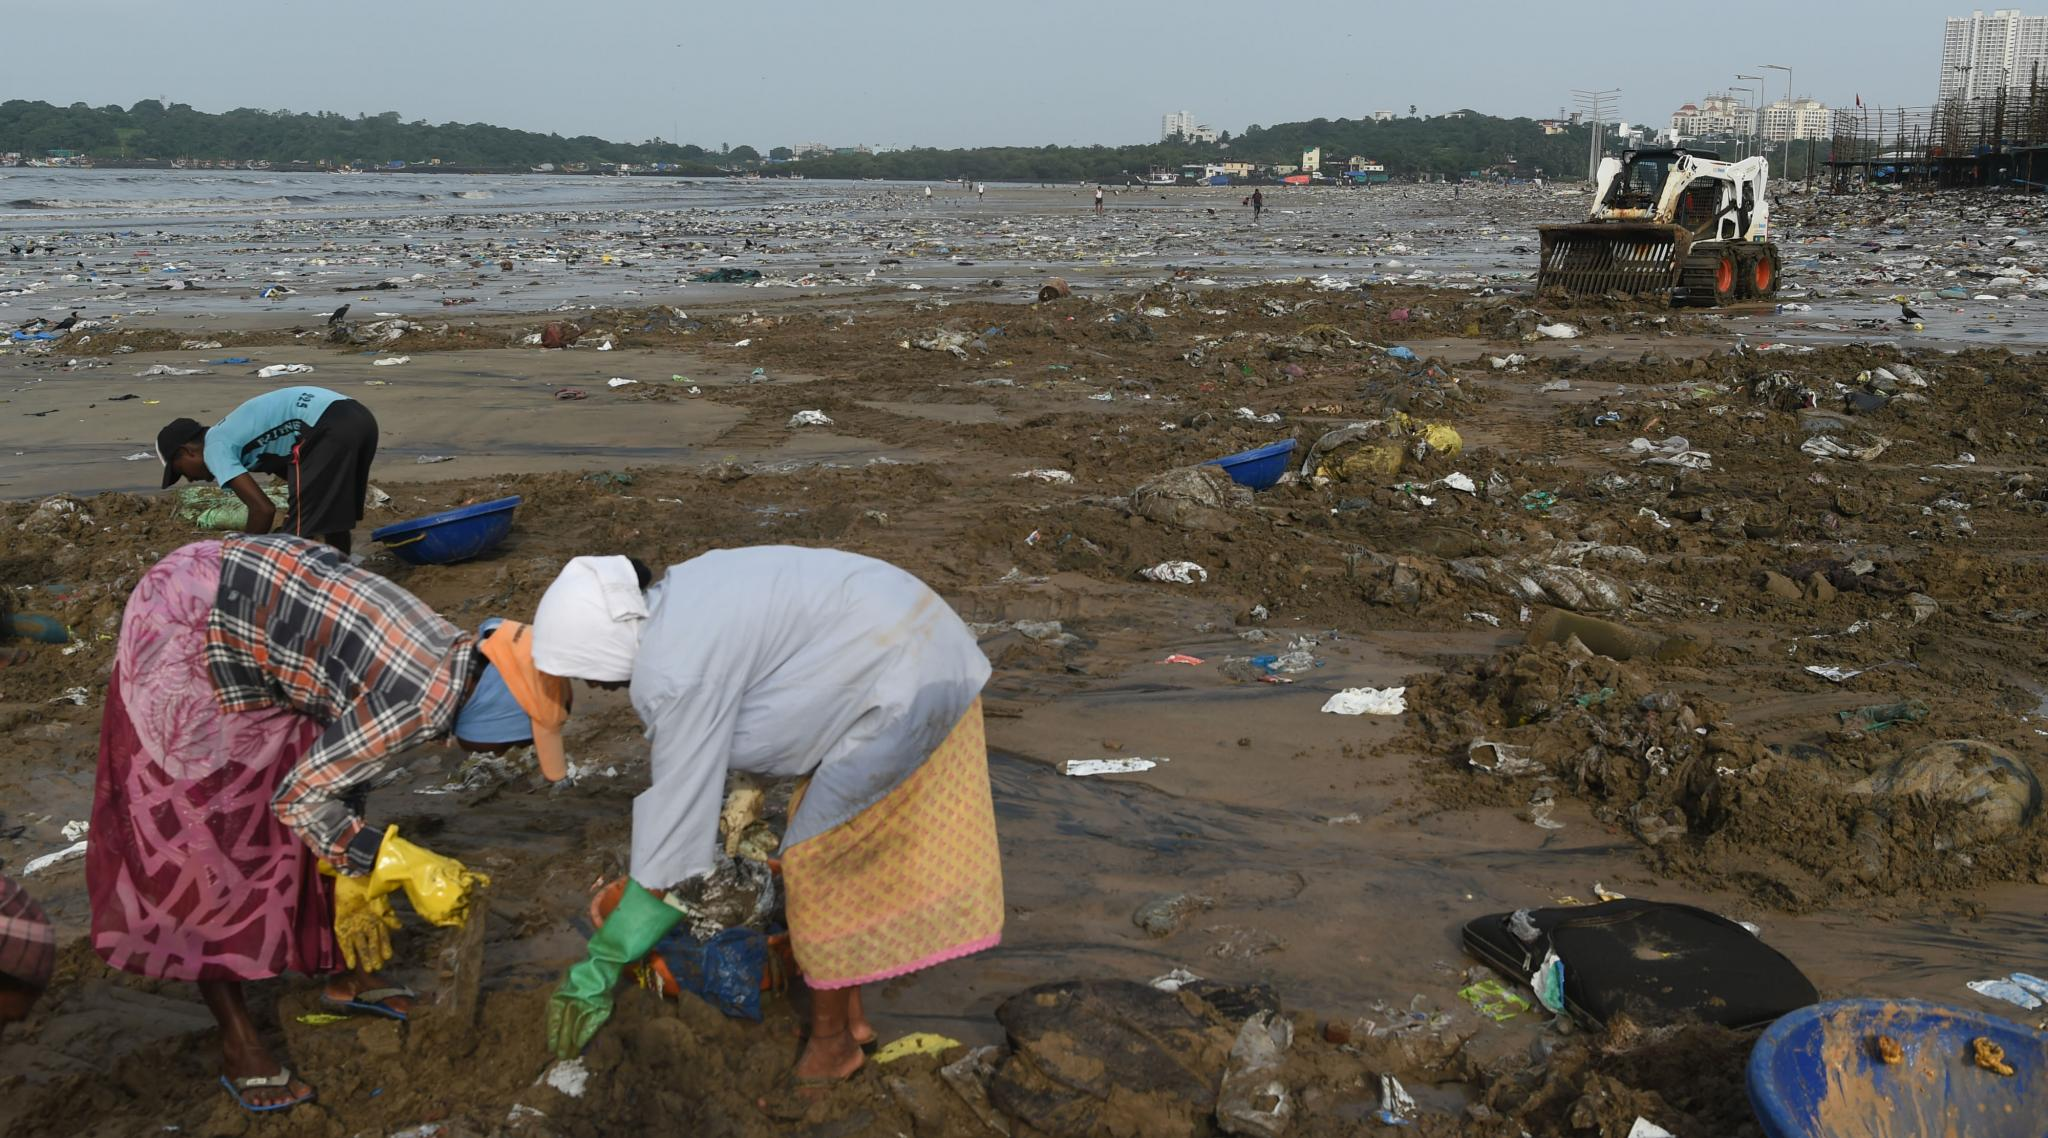 Mumbai to Be Hit by Global Warming: City Fears for Homes and Lives Amid Rising Seas, Shrinking Mangroves